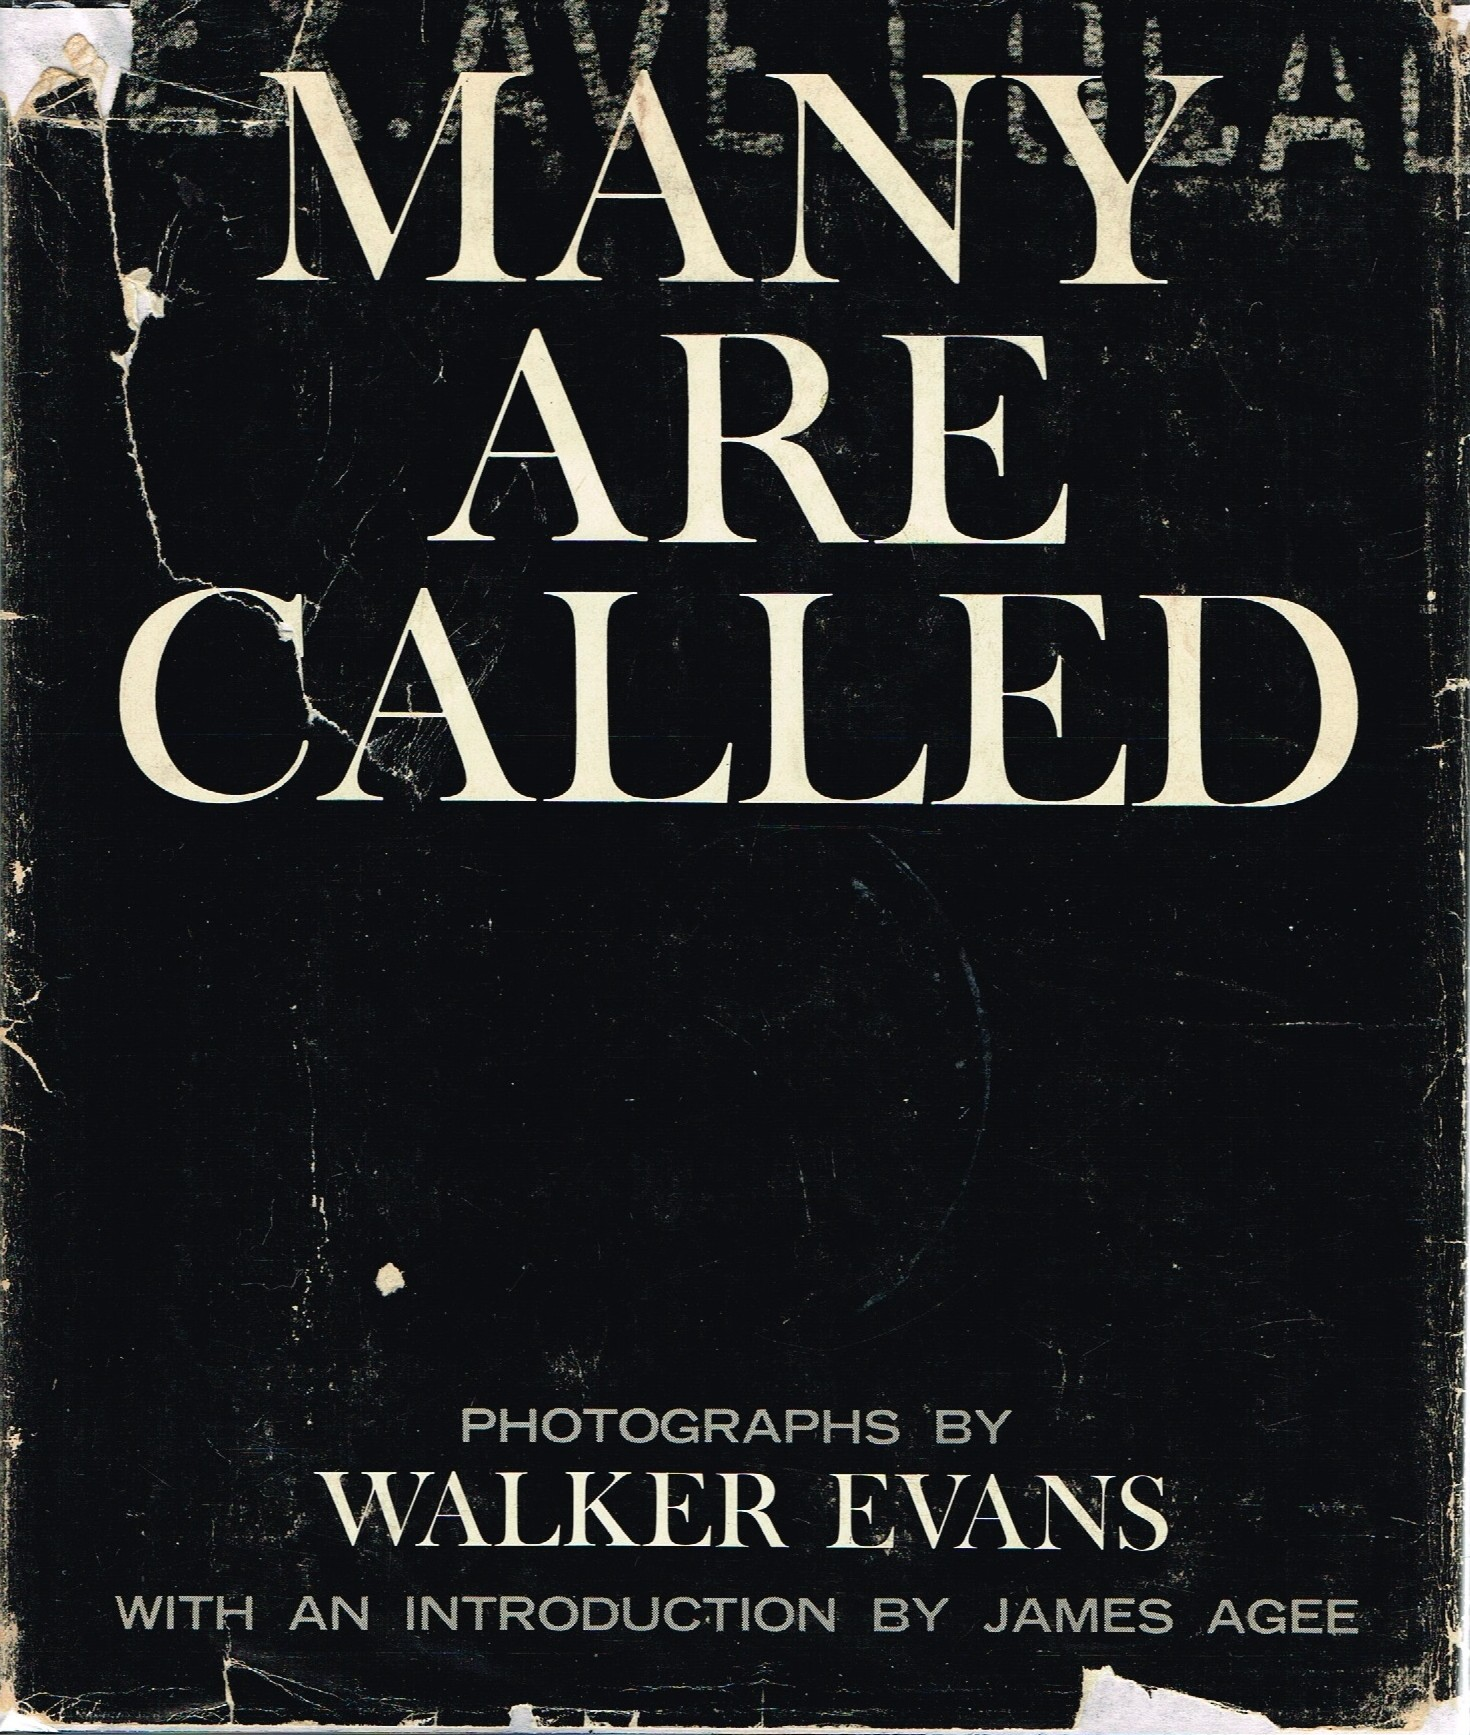 (EVANS, WALKER). EVANS, WALKER. INTRODUCTION BY JAMES AGEE - MANY ARE CALLED: PHOTOGRAPHS BY WALKER EVANS